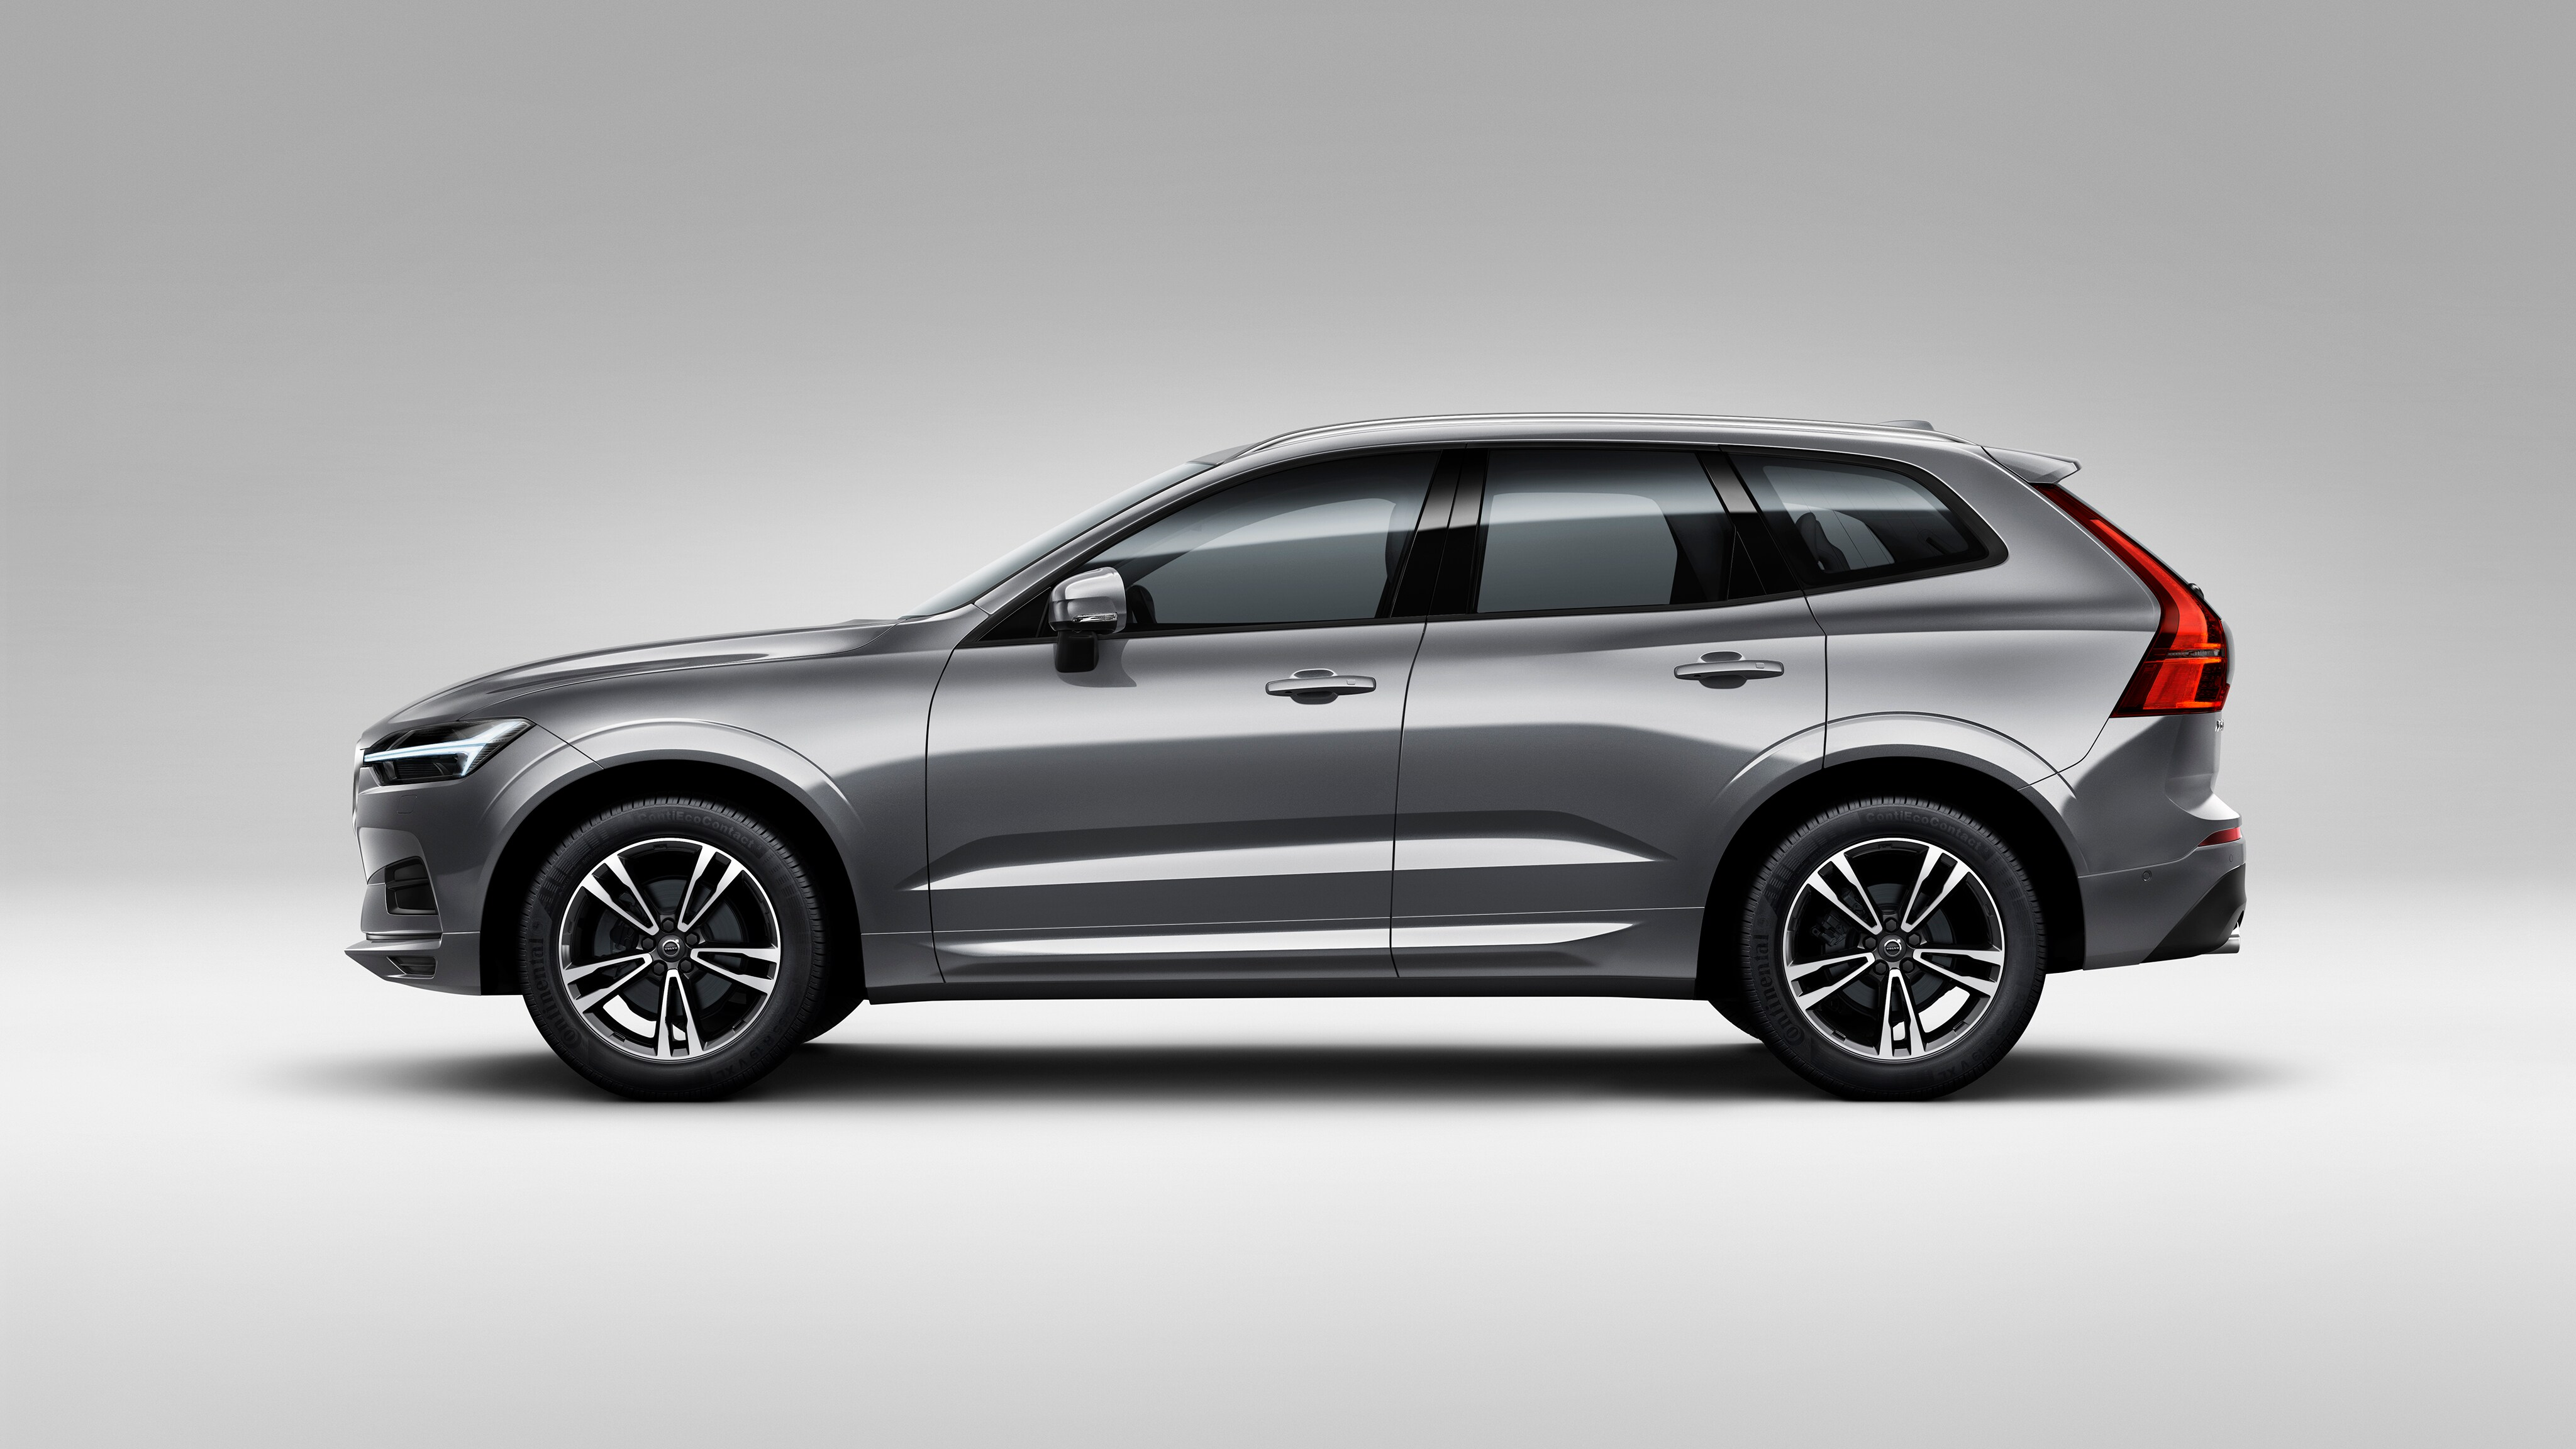 A side-profile studio view of the Volvo XC60